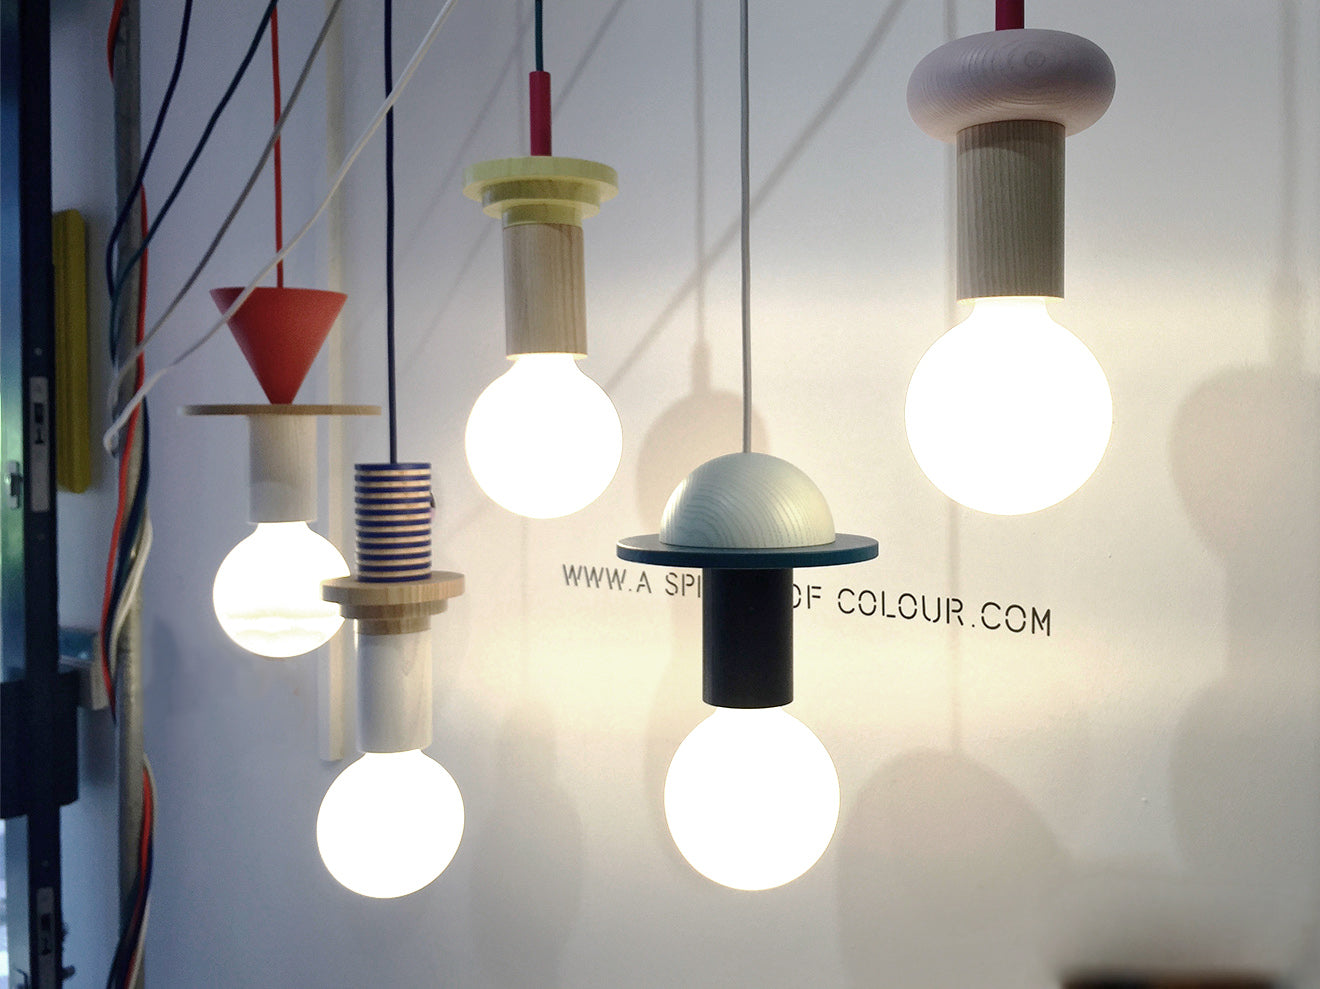 Modern lighting designs from a Splash of Colour London